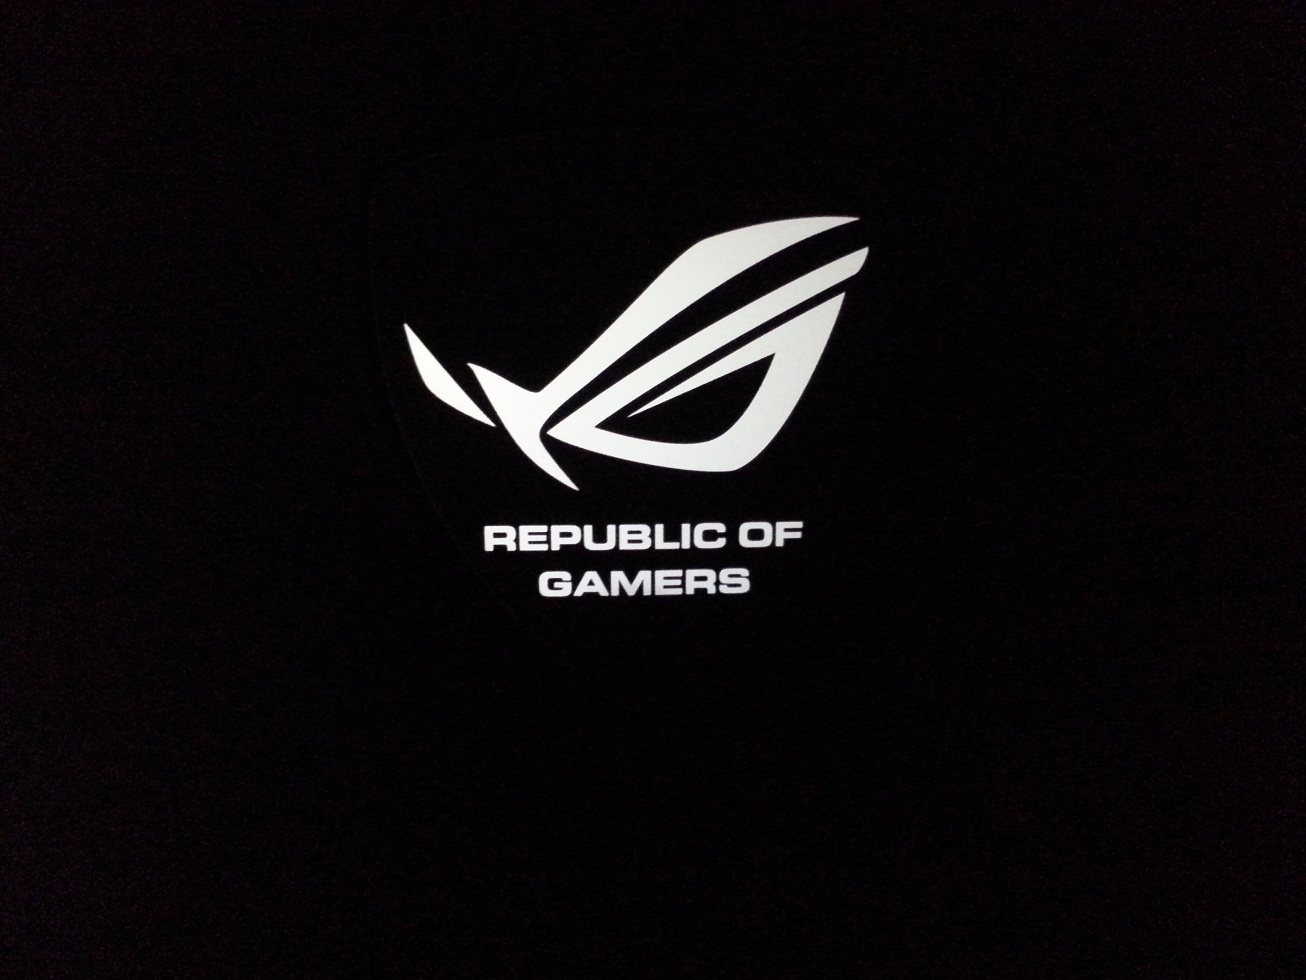 Gallery images and information: Asus Logo Black